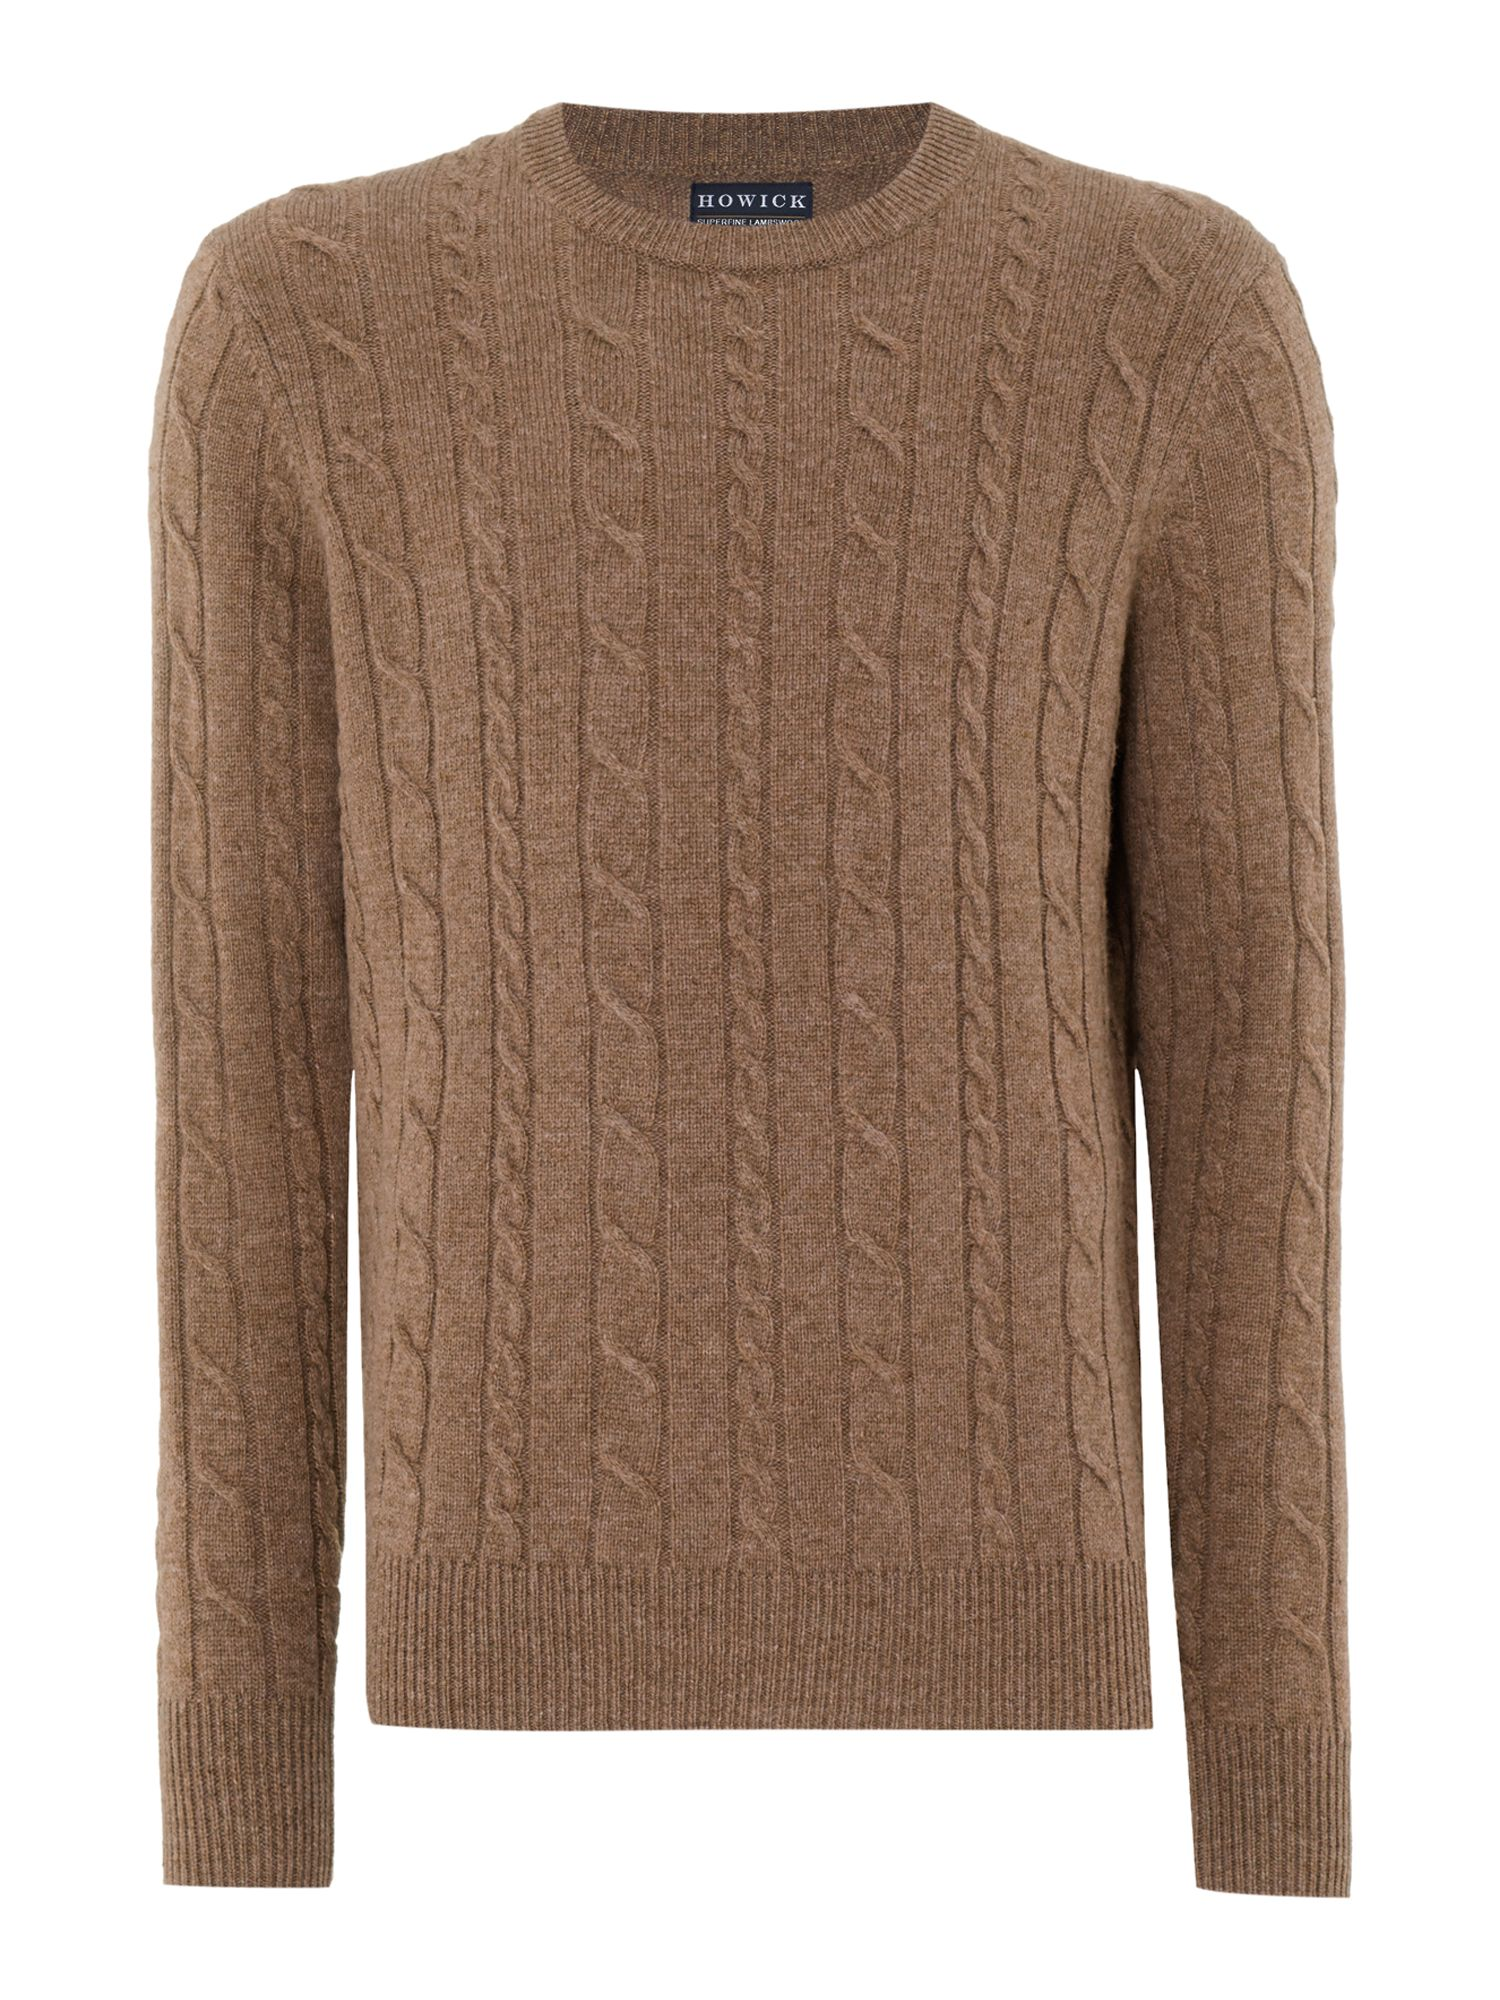 Howick Men's Howick Andover Cable Crew Neck, Caramel